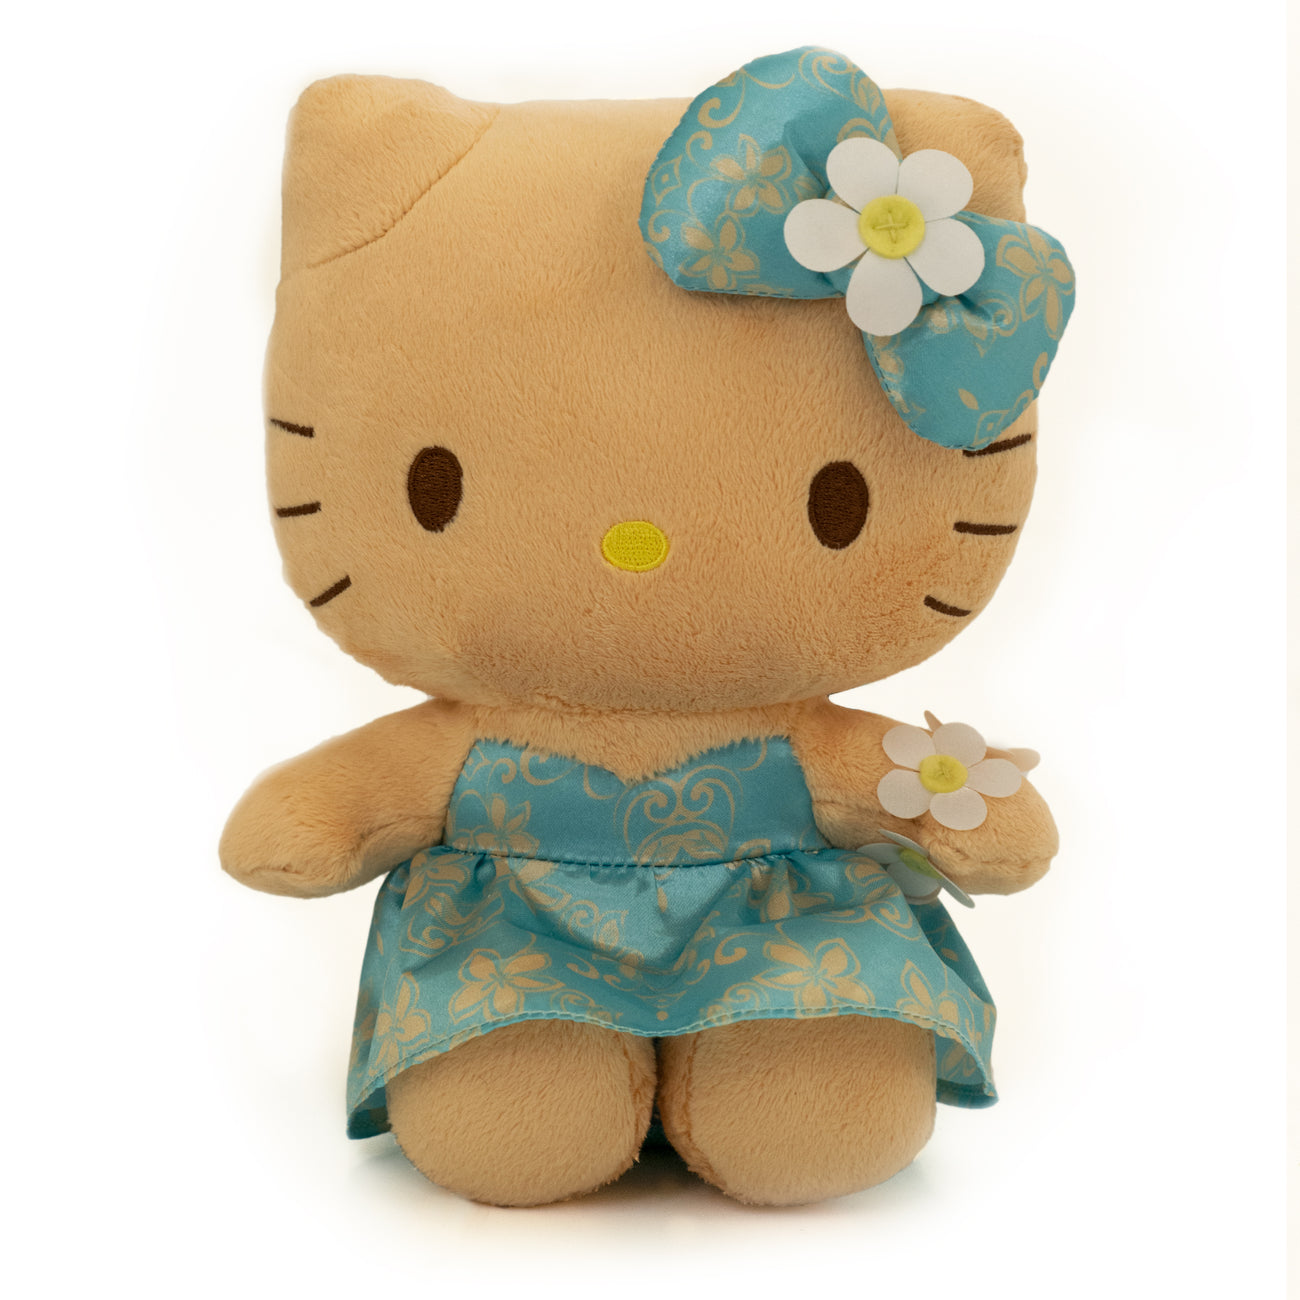 "'IOLANI x HELLO KITTY MELIA BLUE 8"" PLUSH"